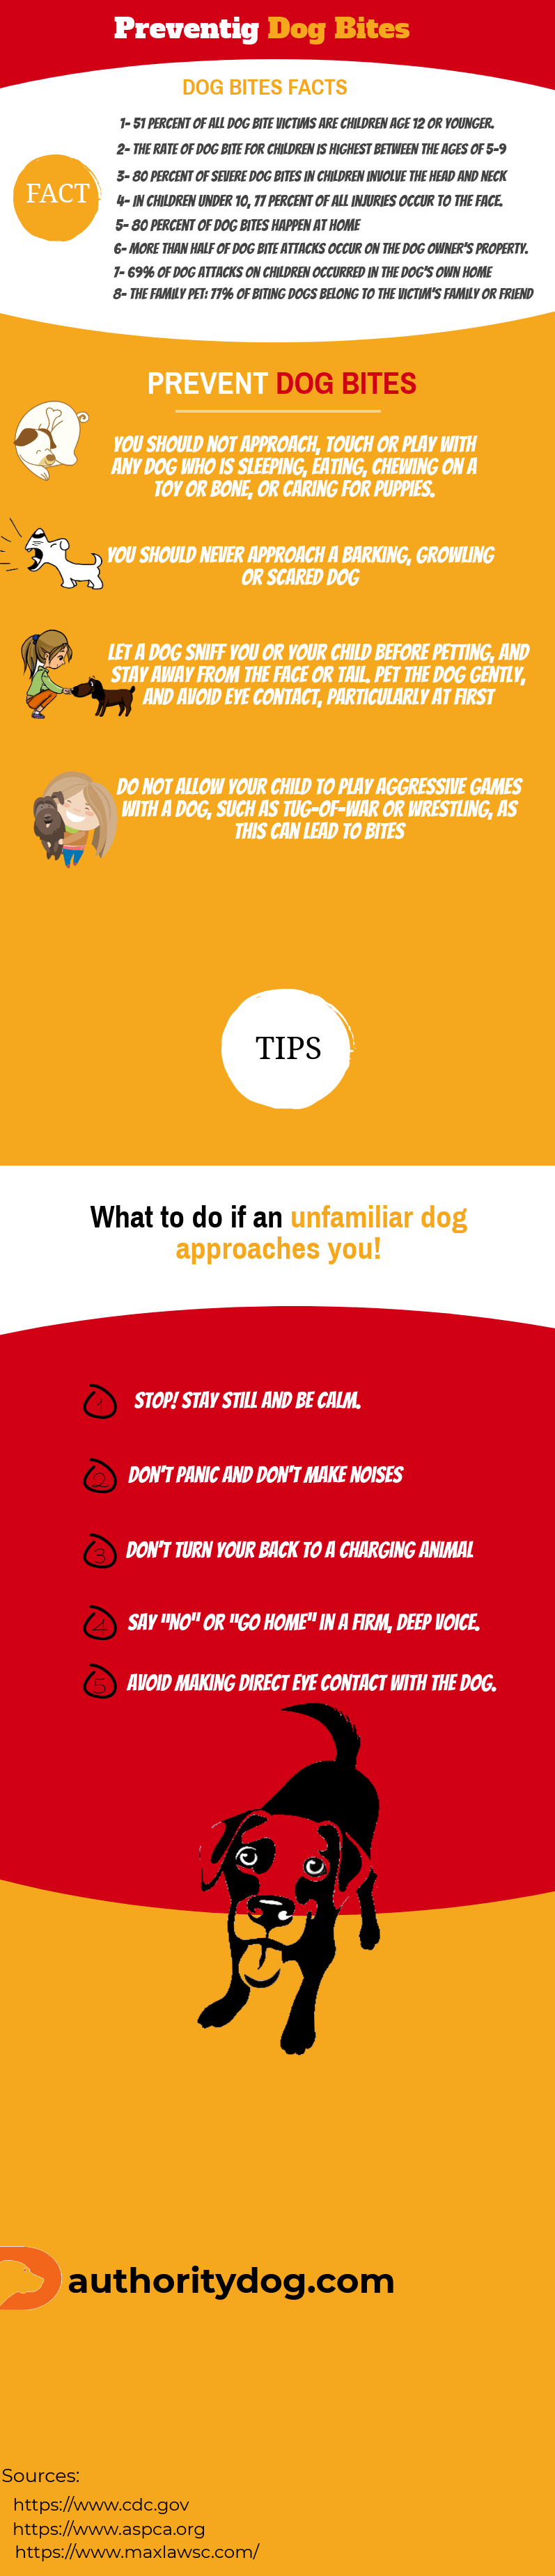 Preventing dog bites Infographic